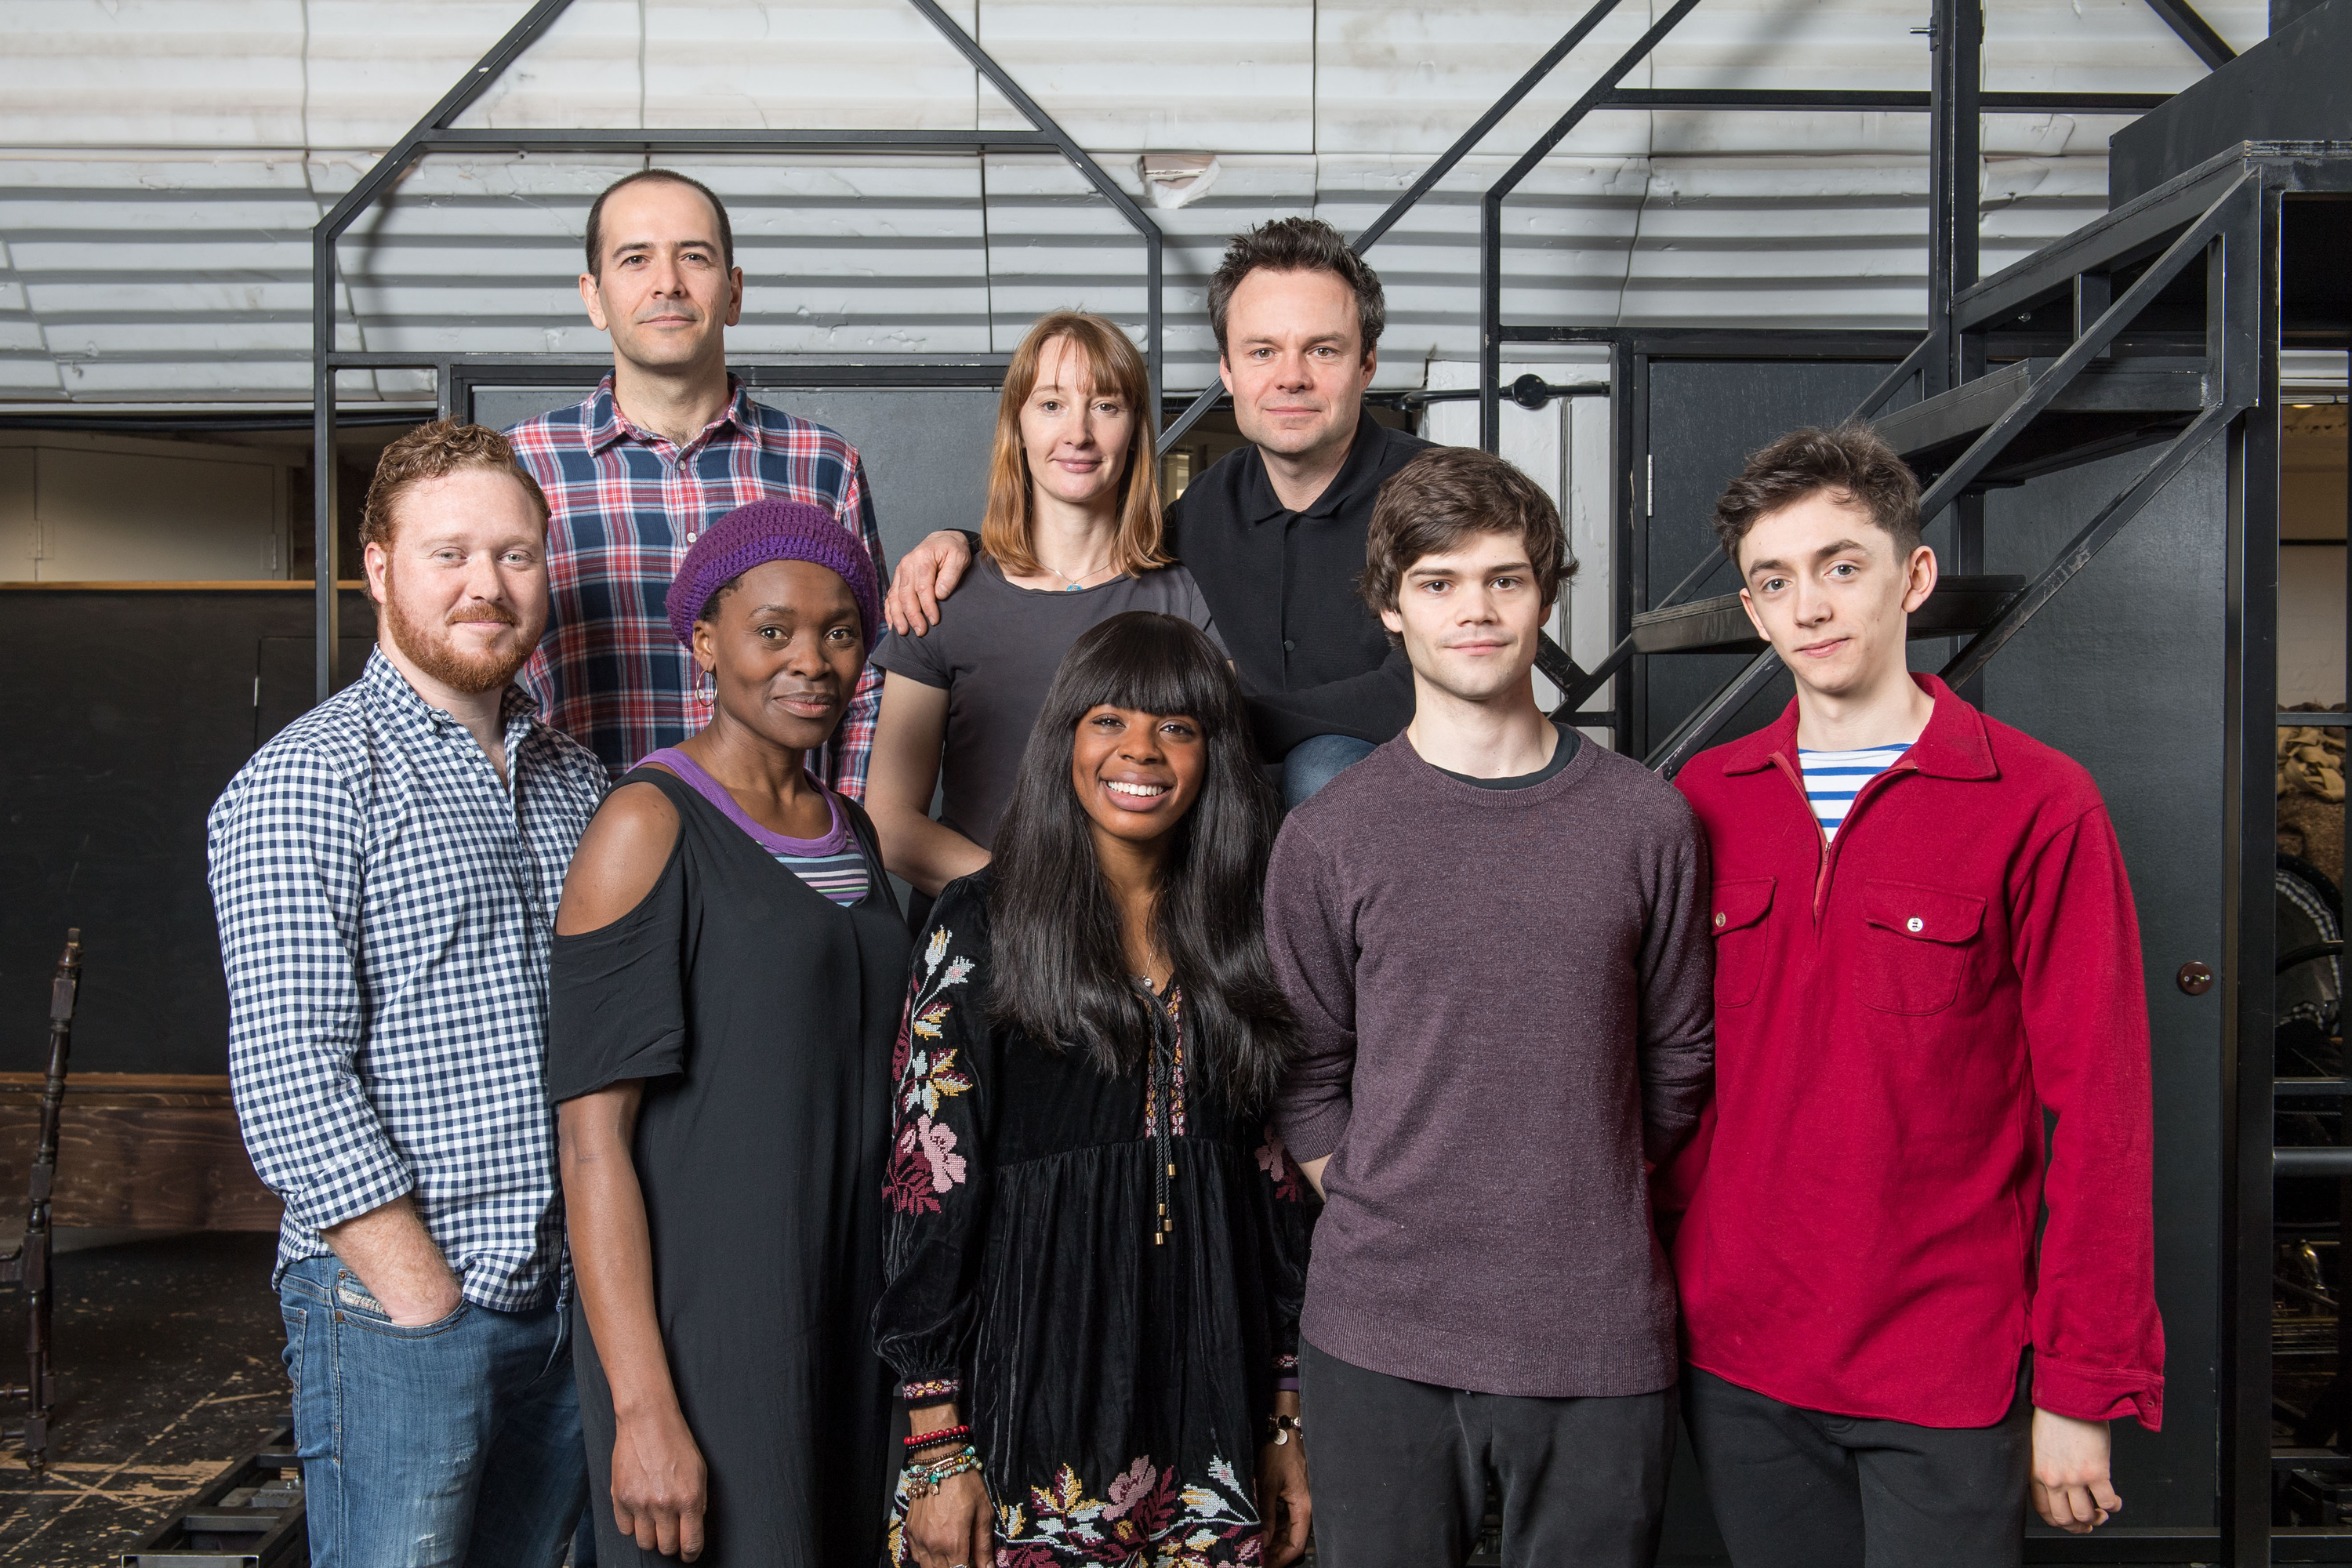 The new cast of 'Harry Potter and the Cursed Child' has been revealed